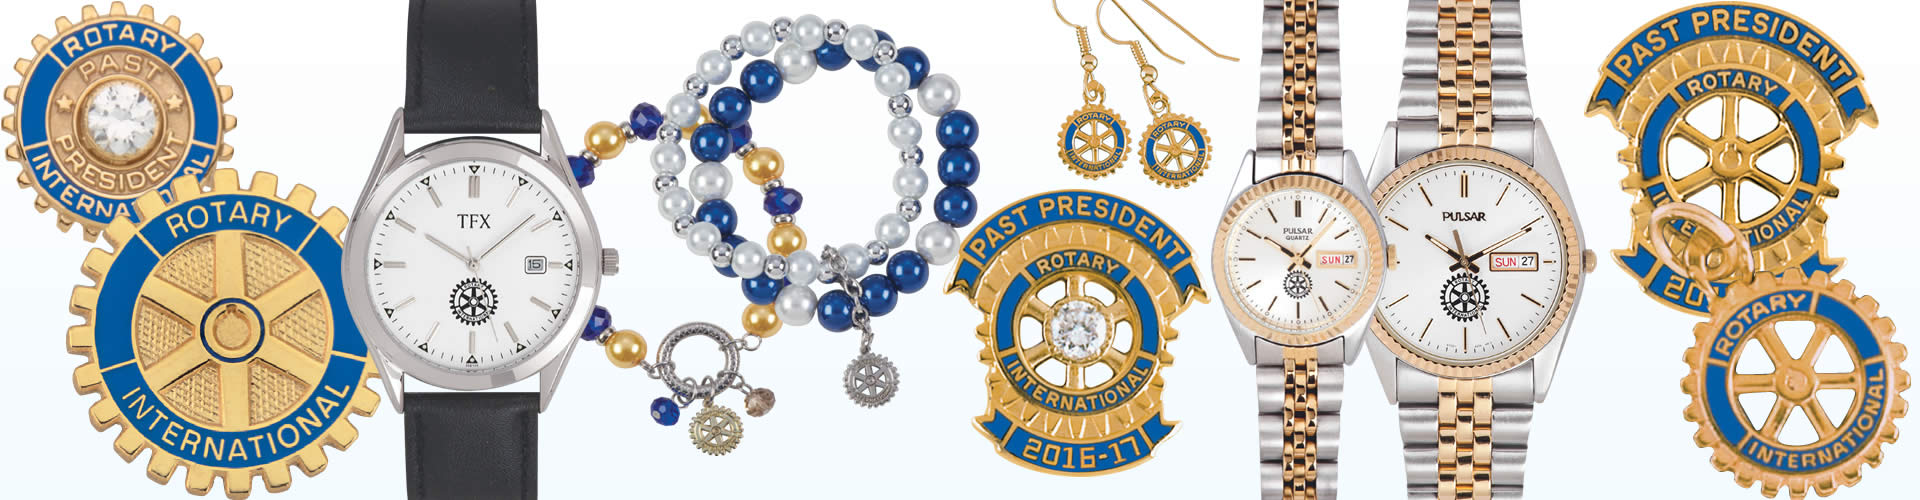 Rotary Club Canada Products